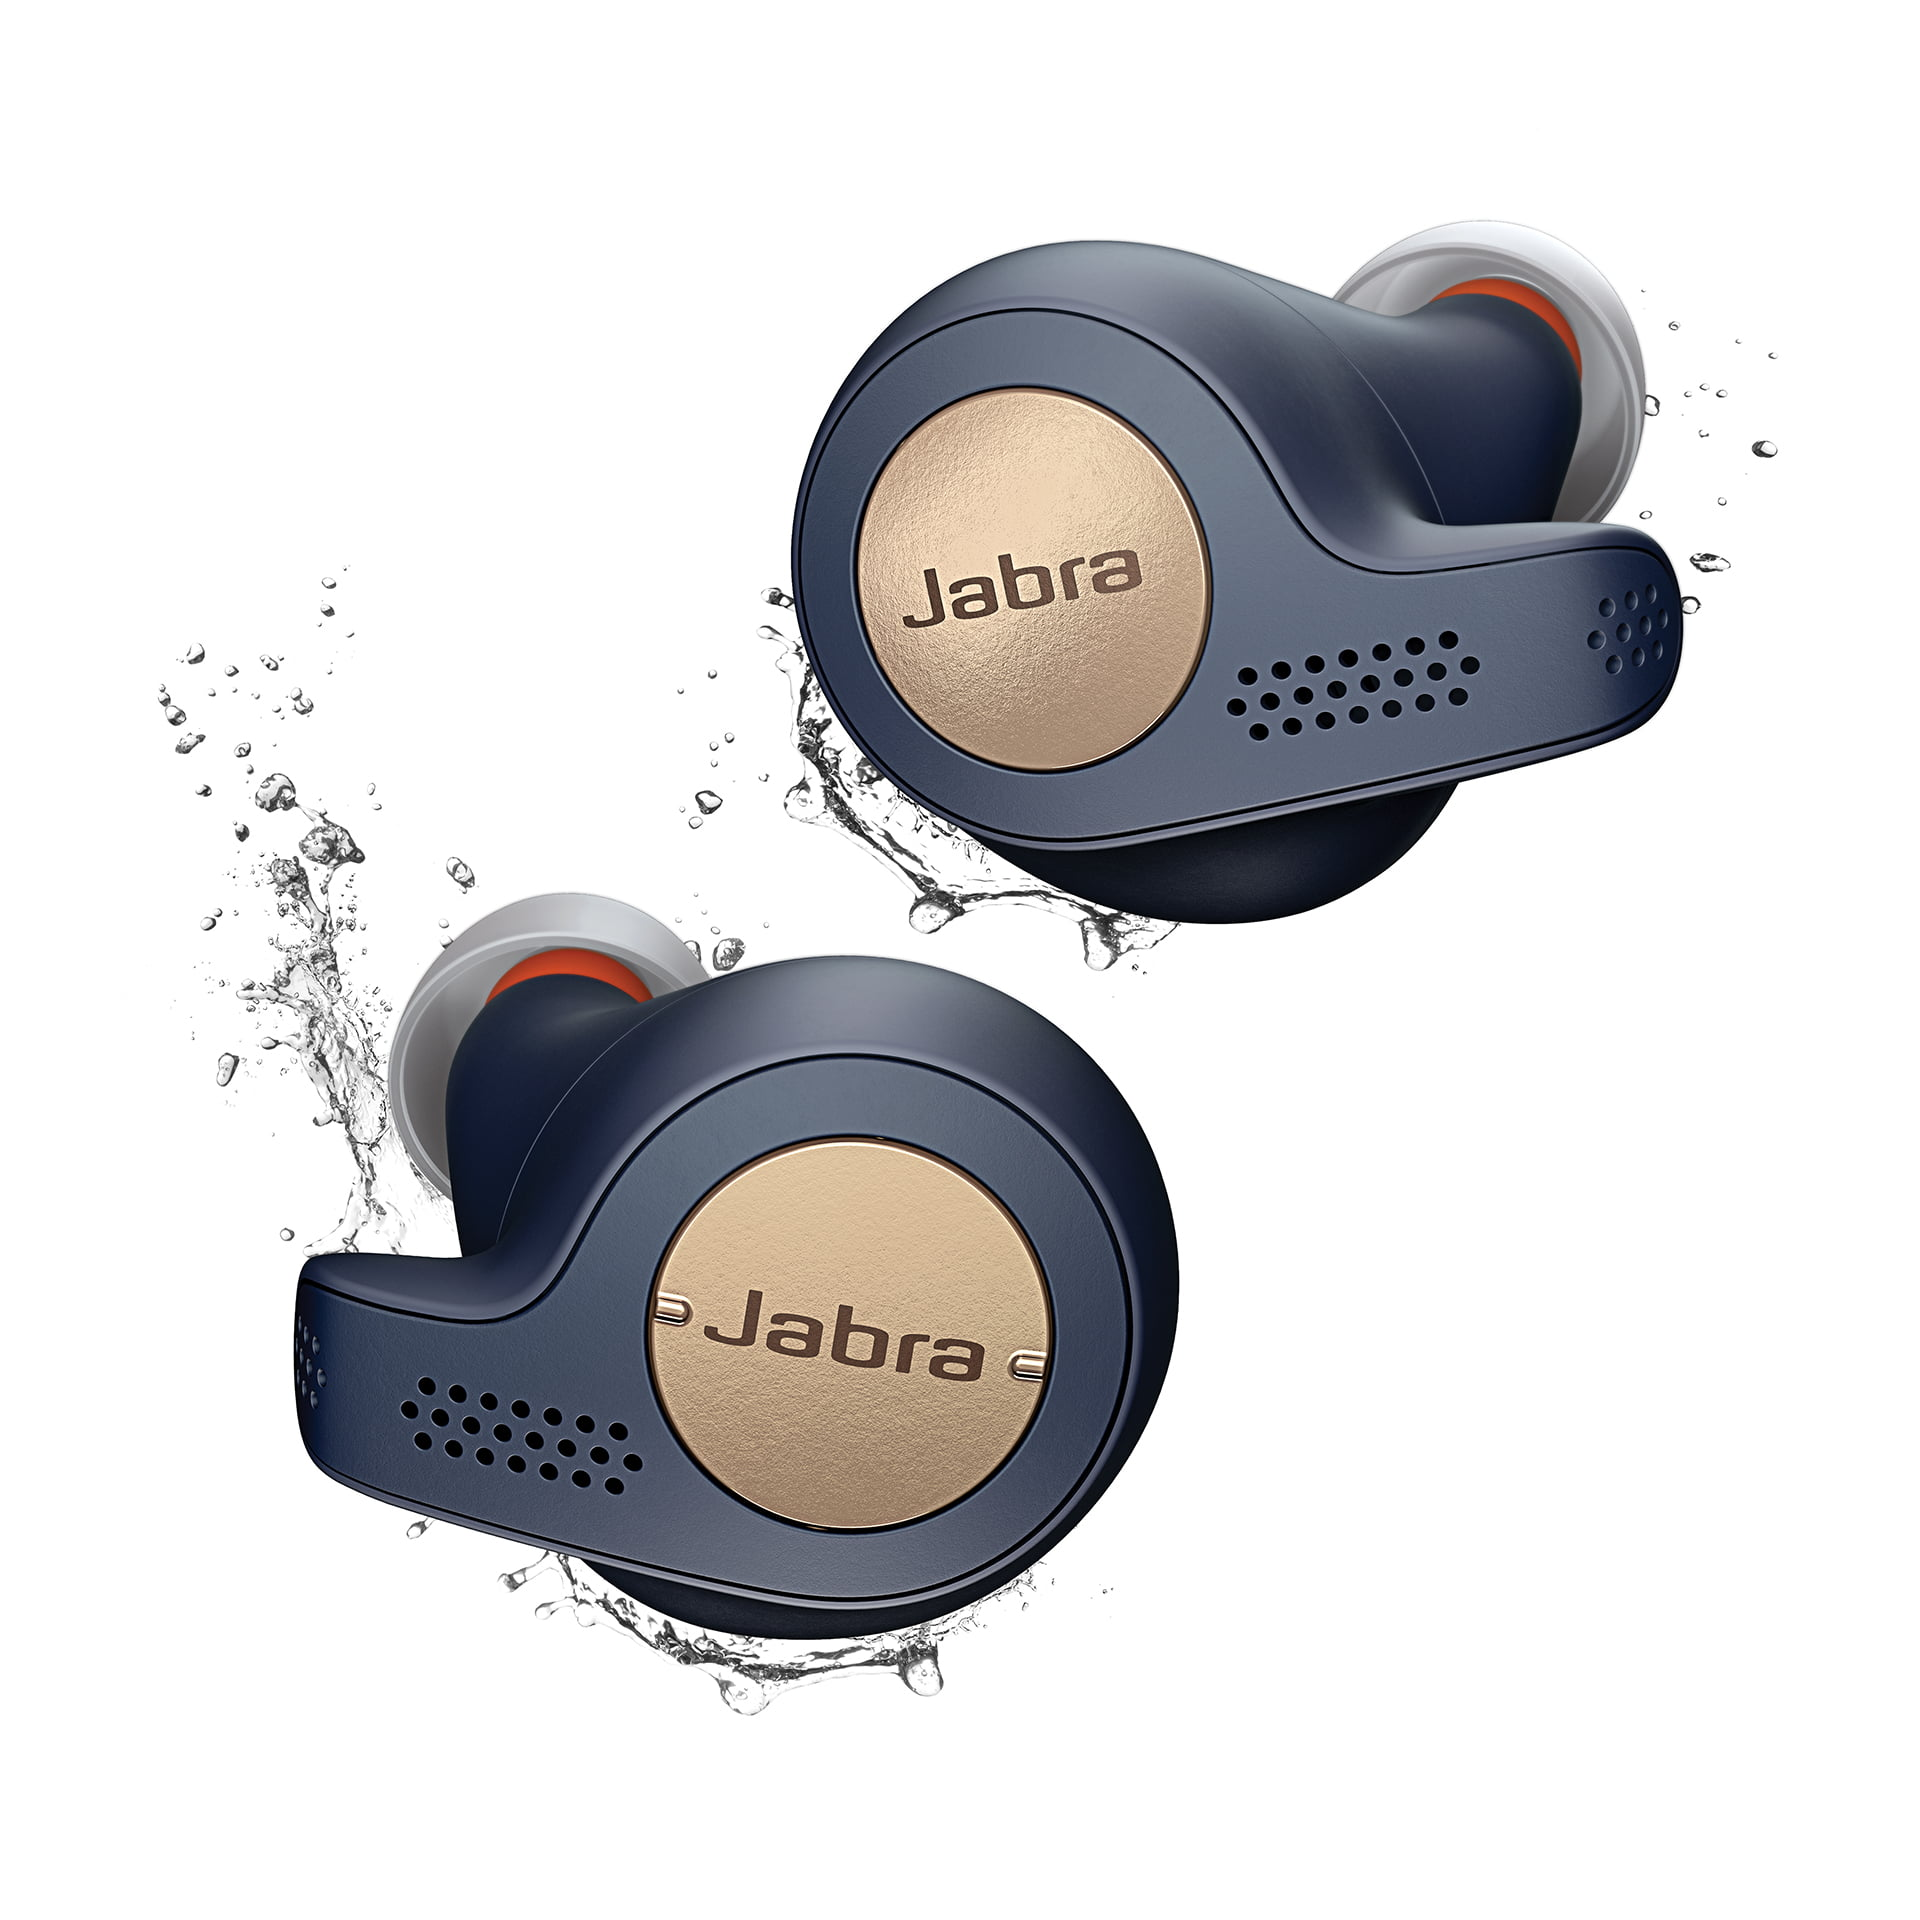 Jabra Elite Active 65t True Wireless Sport Earbuds Walmart Com Walmart Com